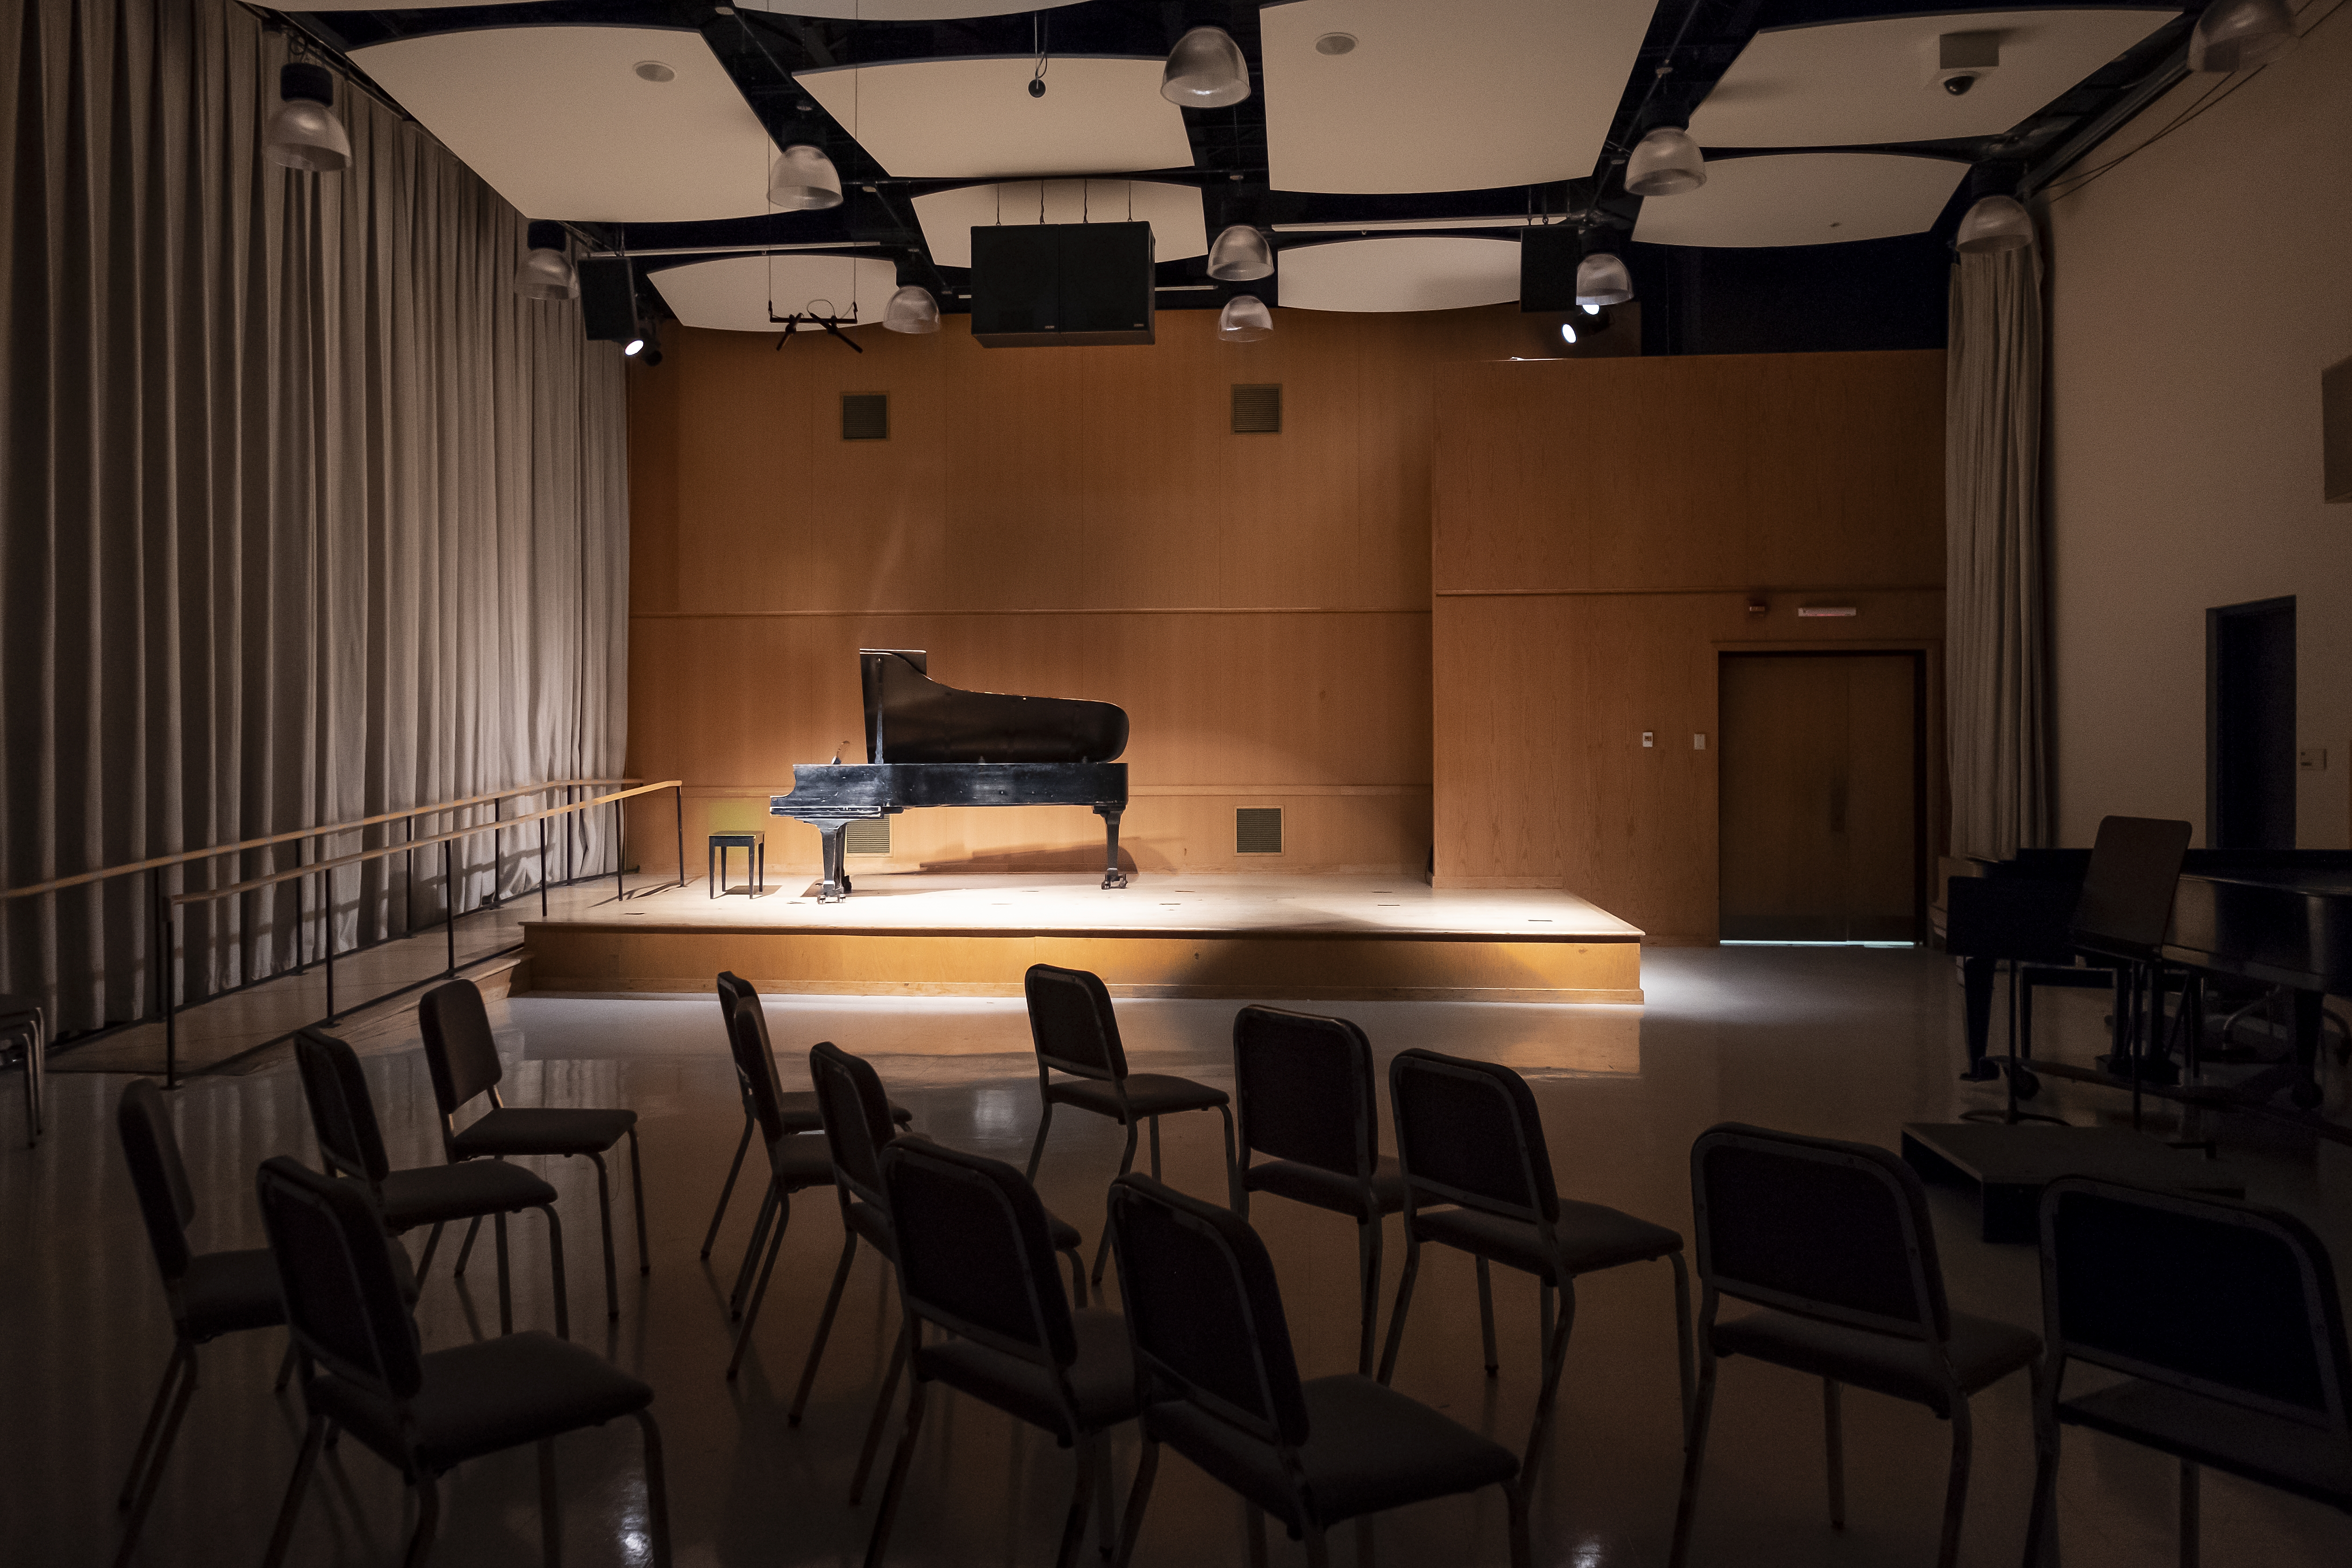 Wooden stage with grand piano on it, audience lights are dimmed and spotlight on piano